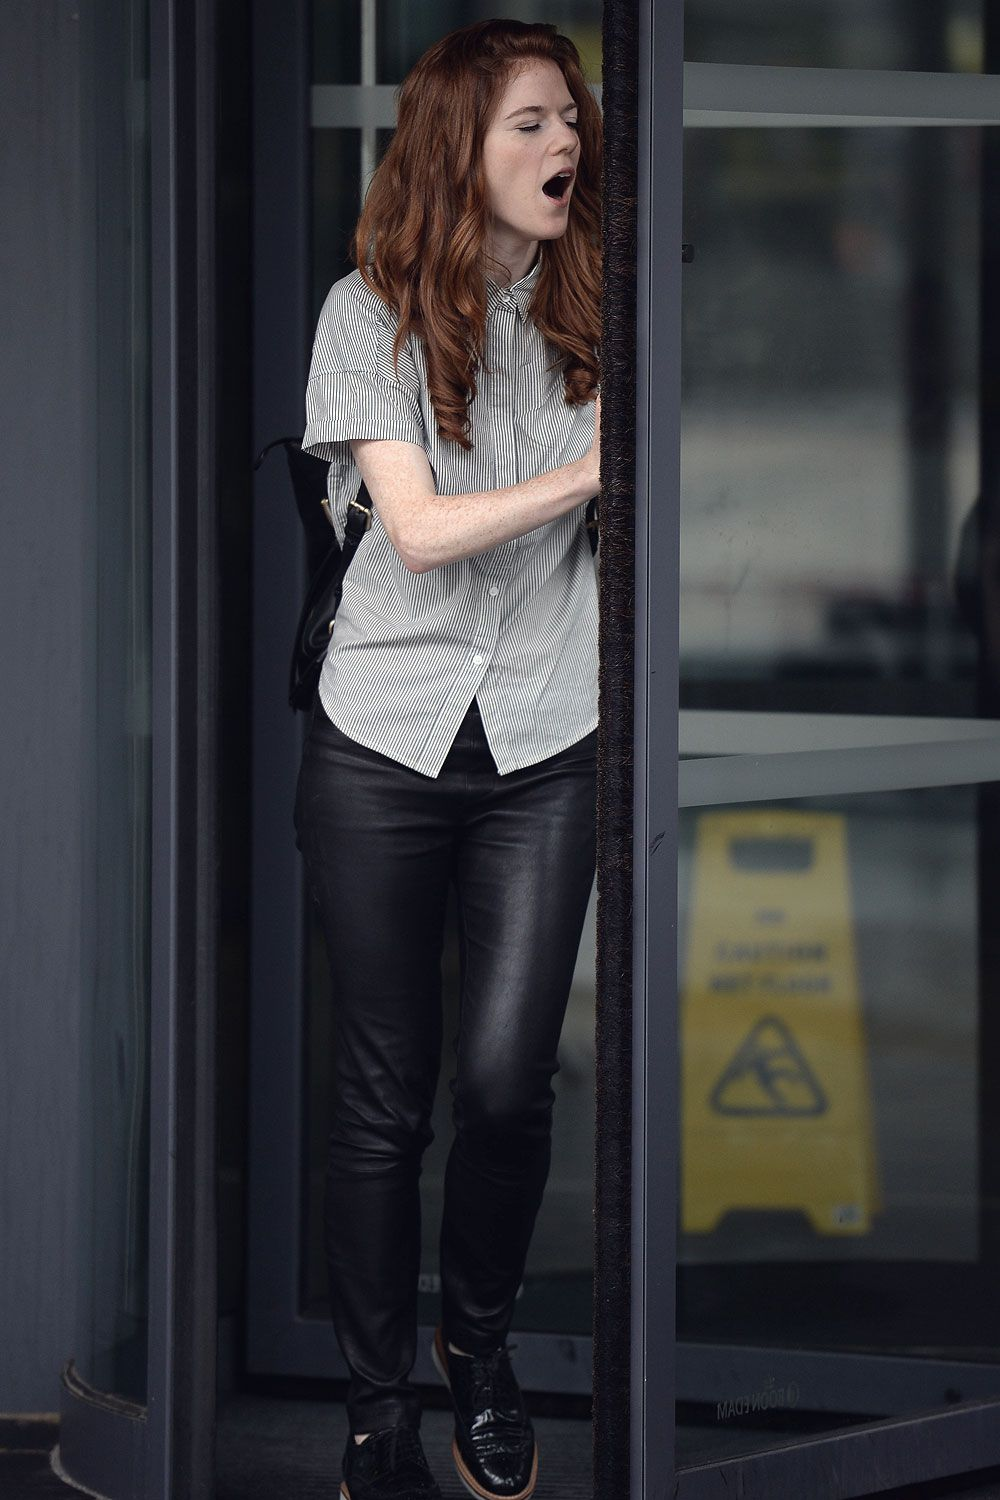 Rose Leslie wearing leather pants  leather skinny pants    Celebrity     Rose Leslie wearing leather pants  leather skinny pants